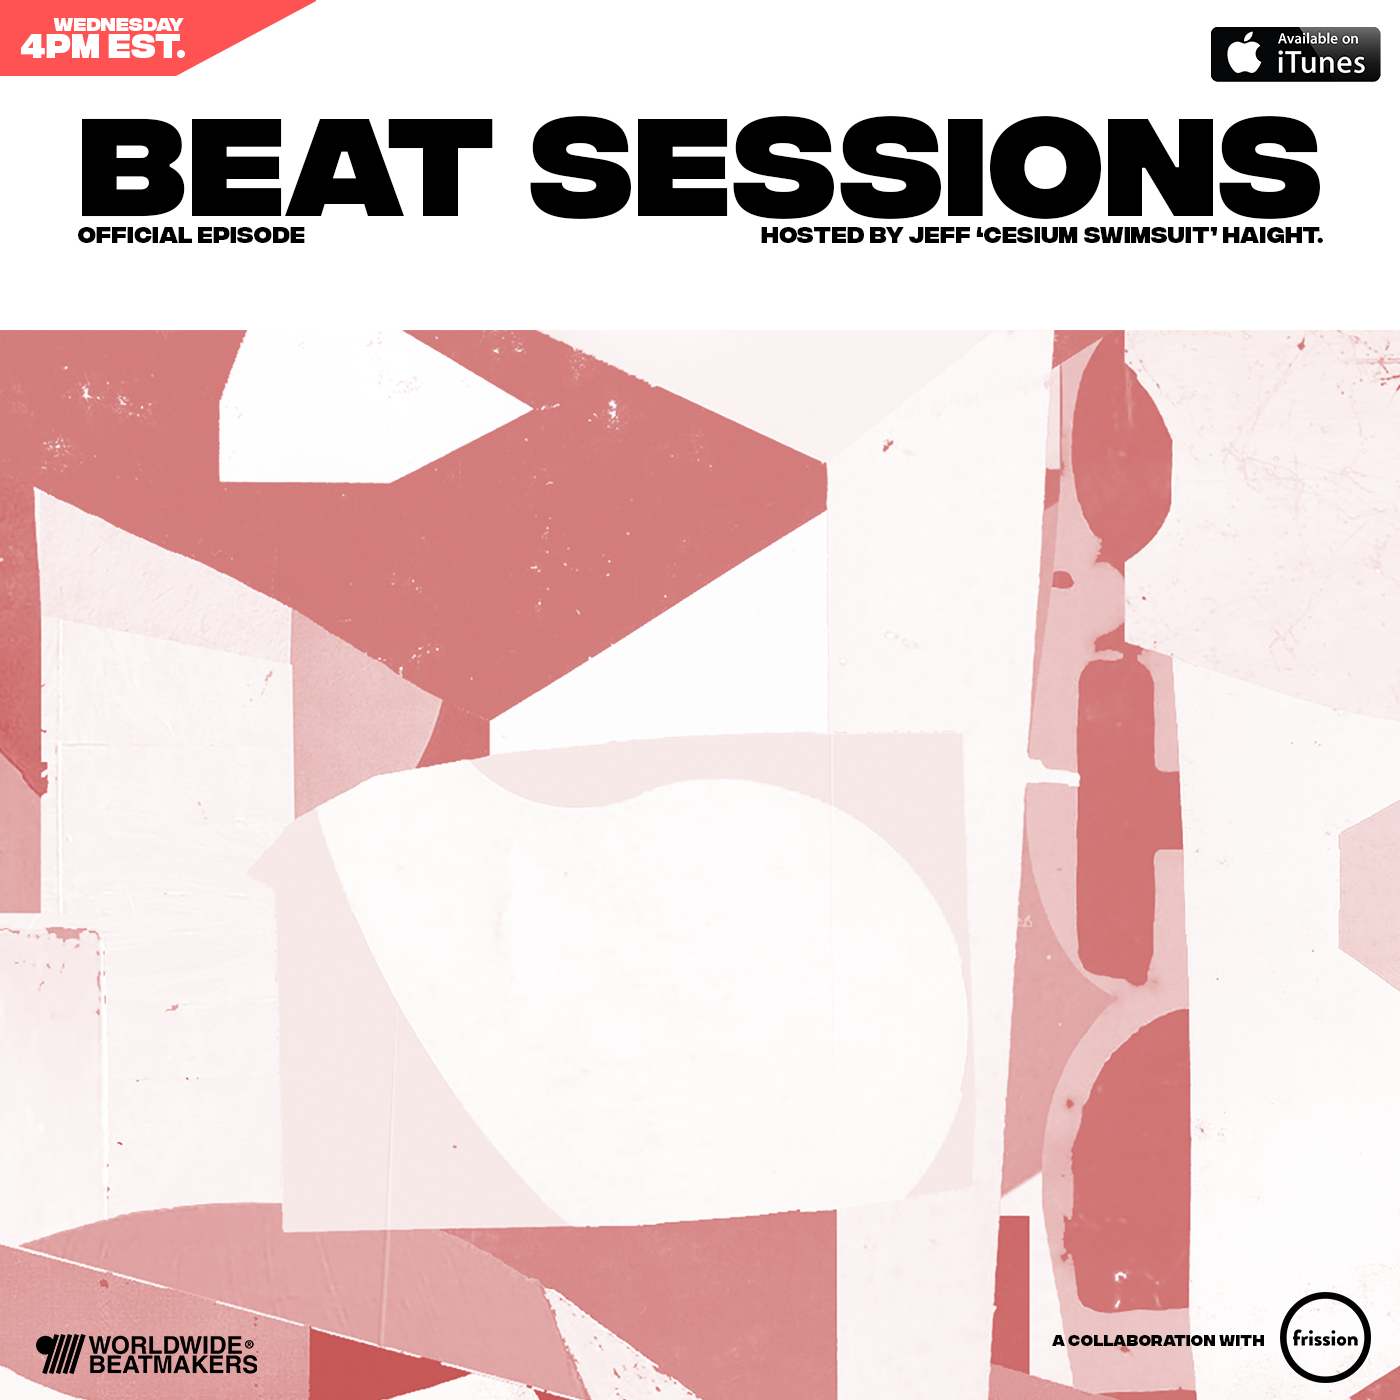 Beat Sessions - Episode 12 Season 04 with Cesium Swimsuit.